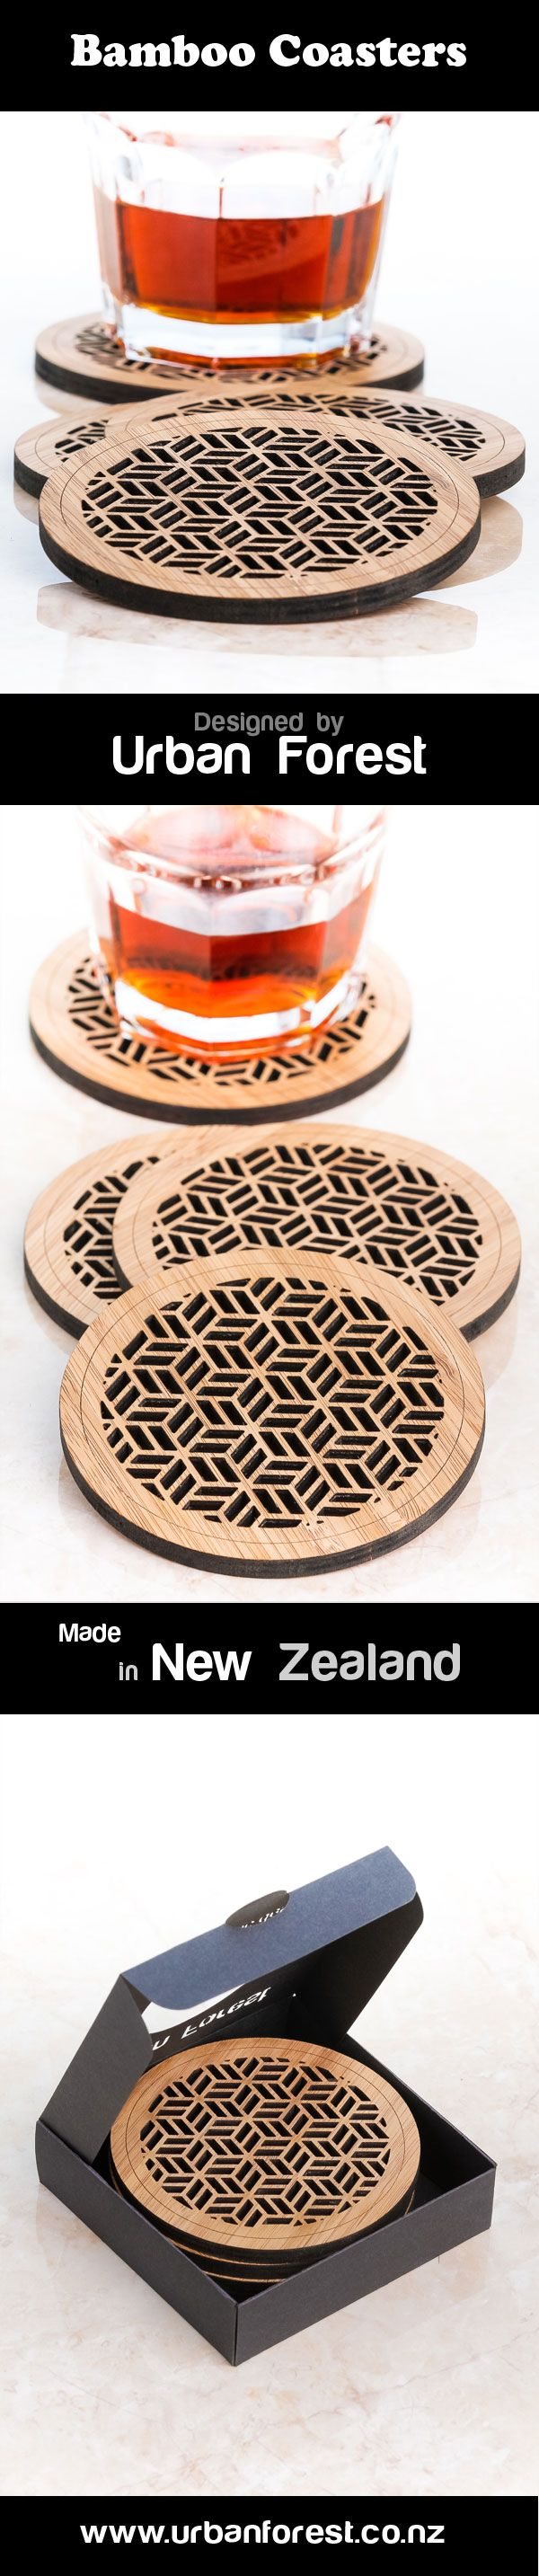 laser cut bamboo coasters design by Urban Forest. Made in New ...